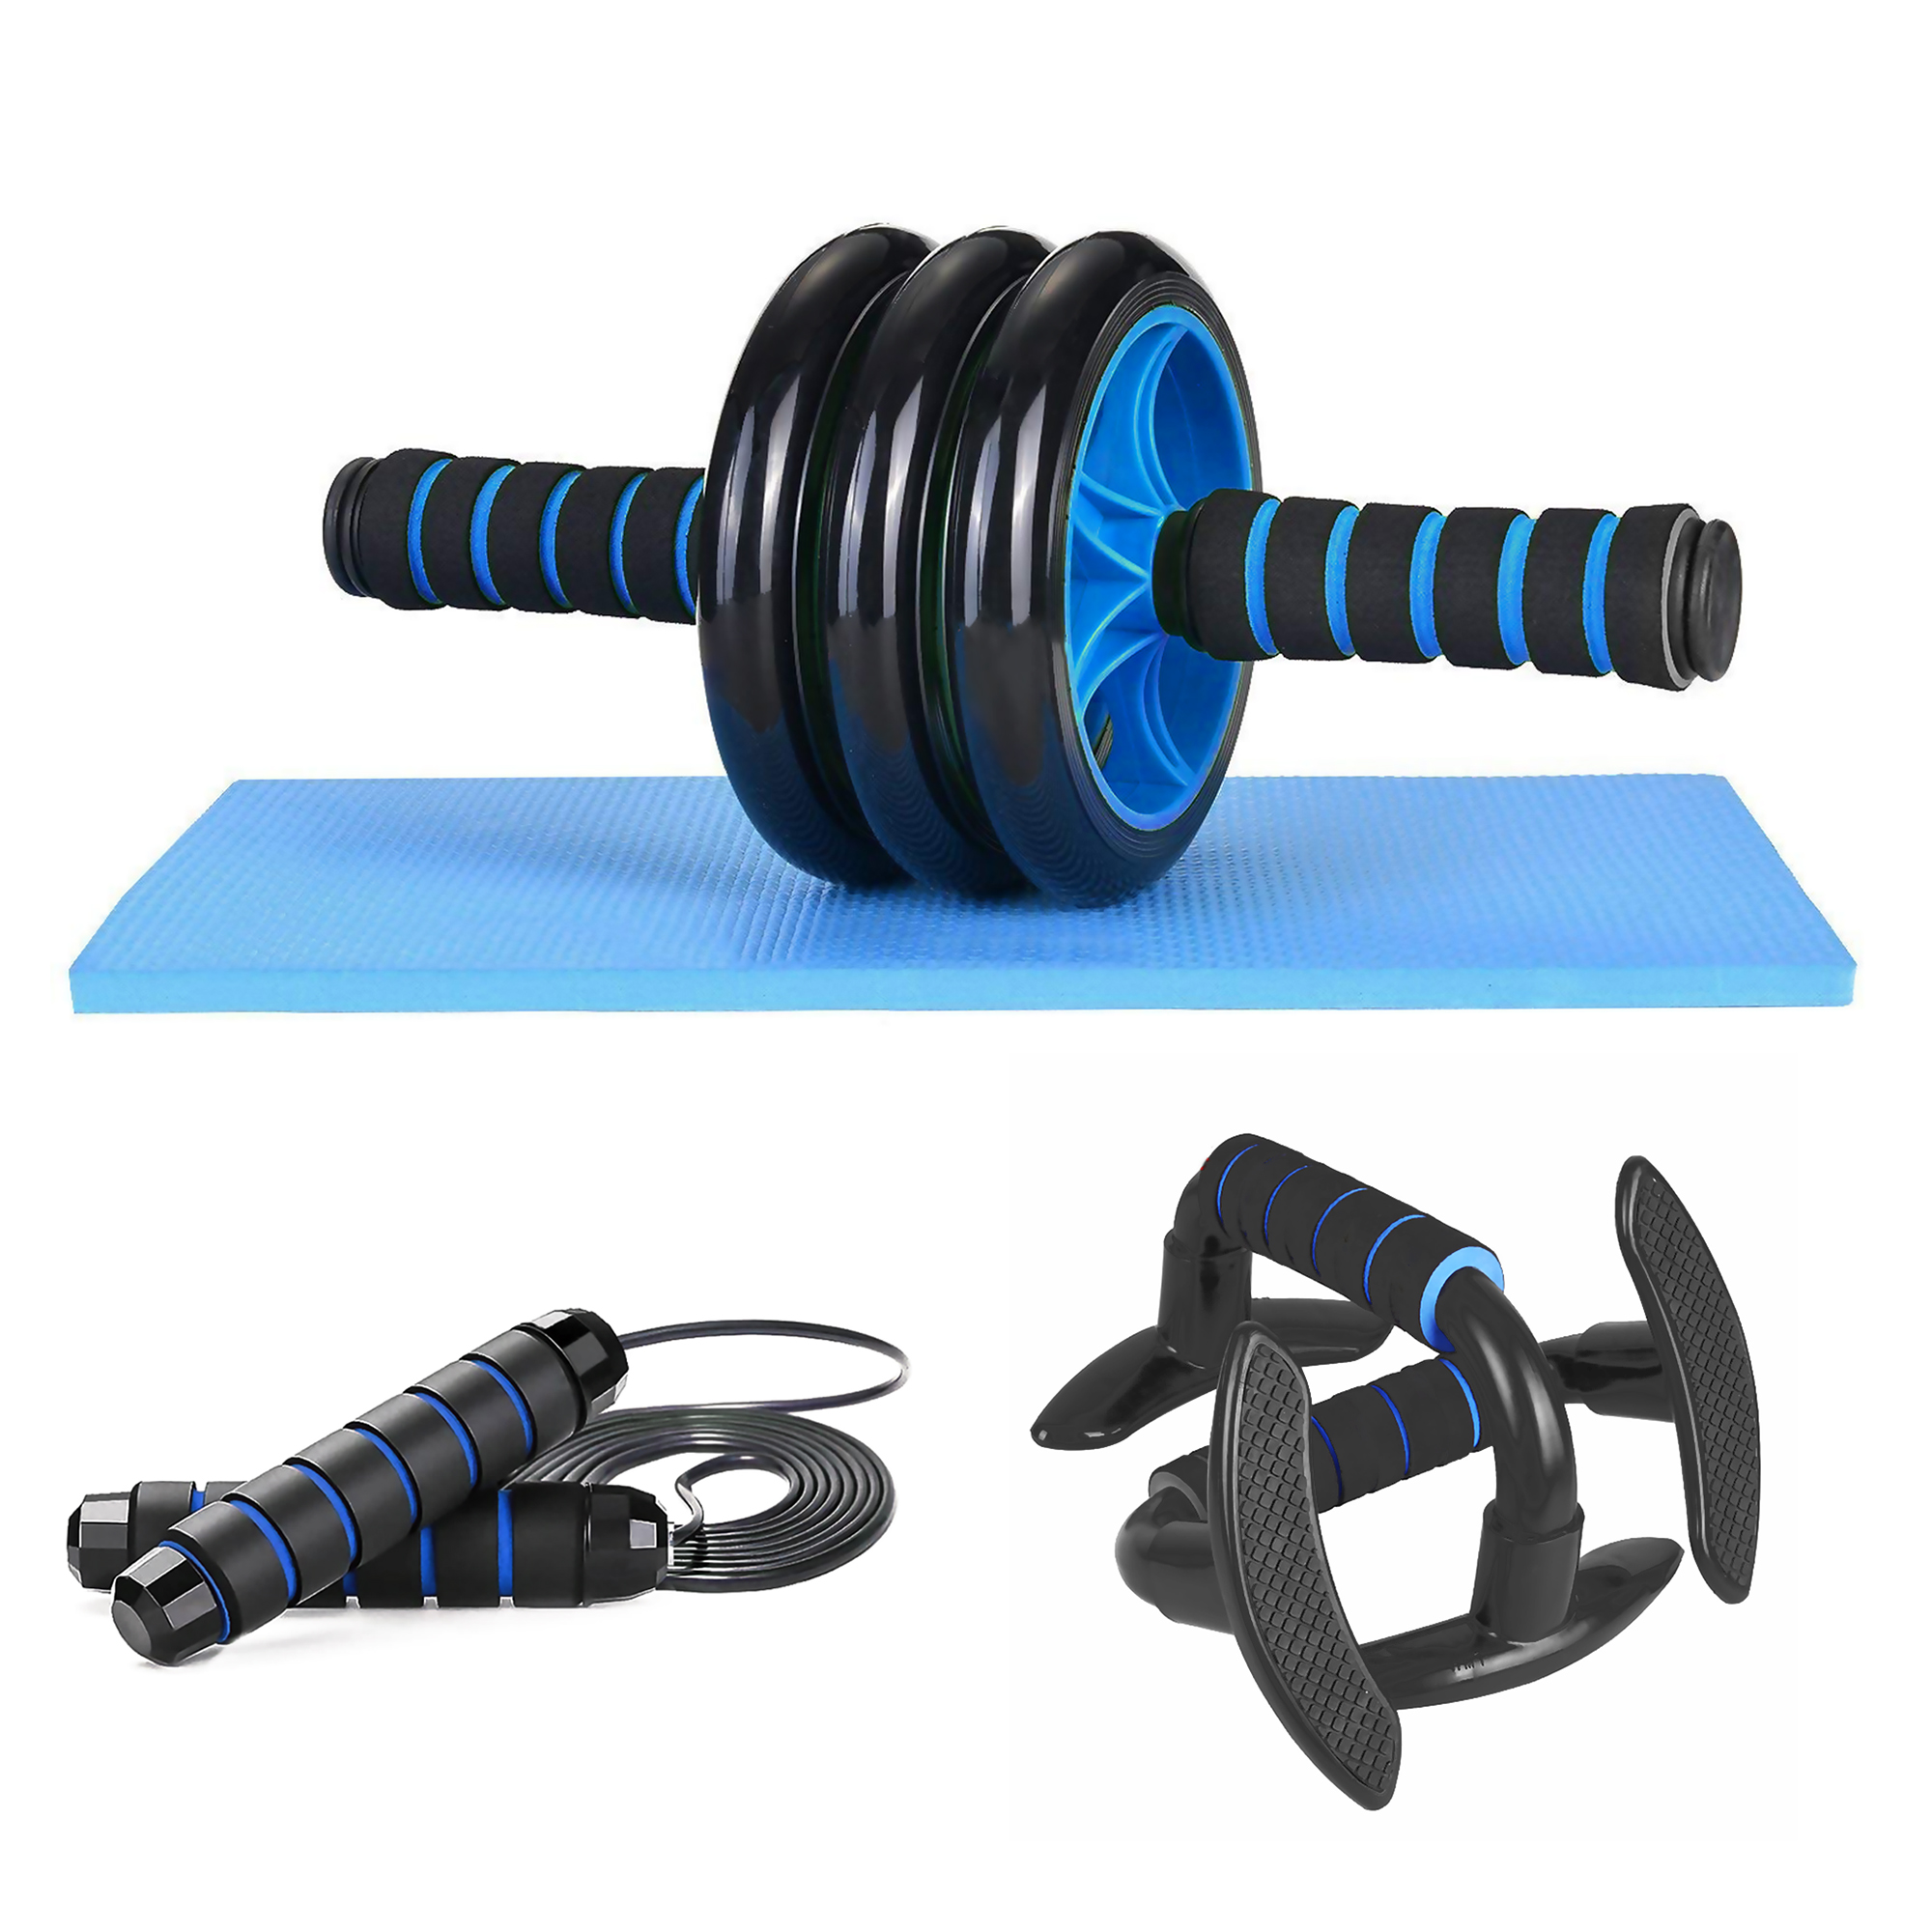 [US Direct] AB ROLLER SET (4 in 1)10% discount for new product